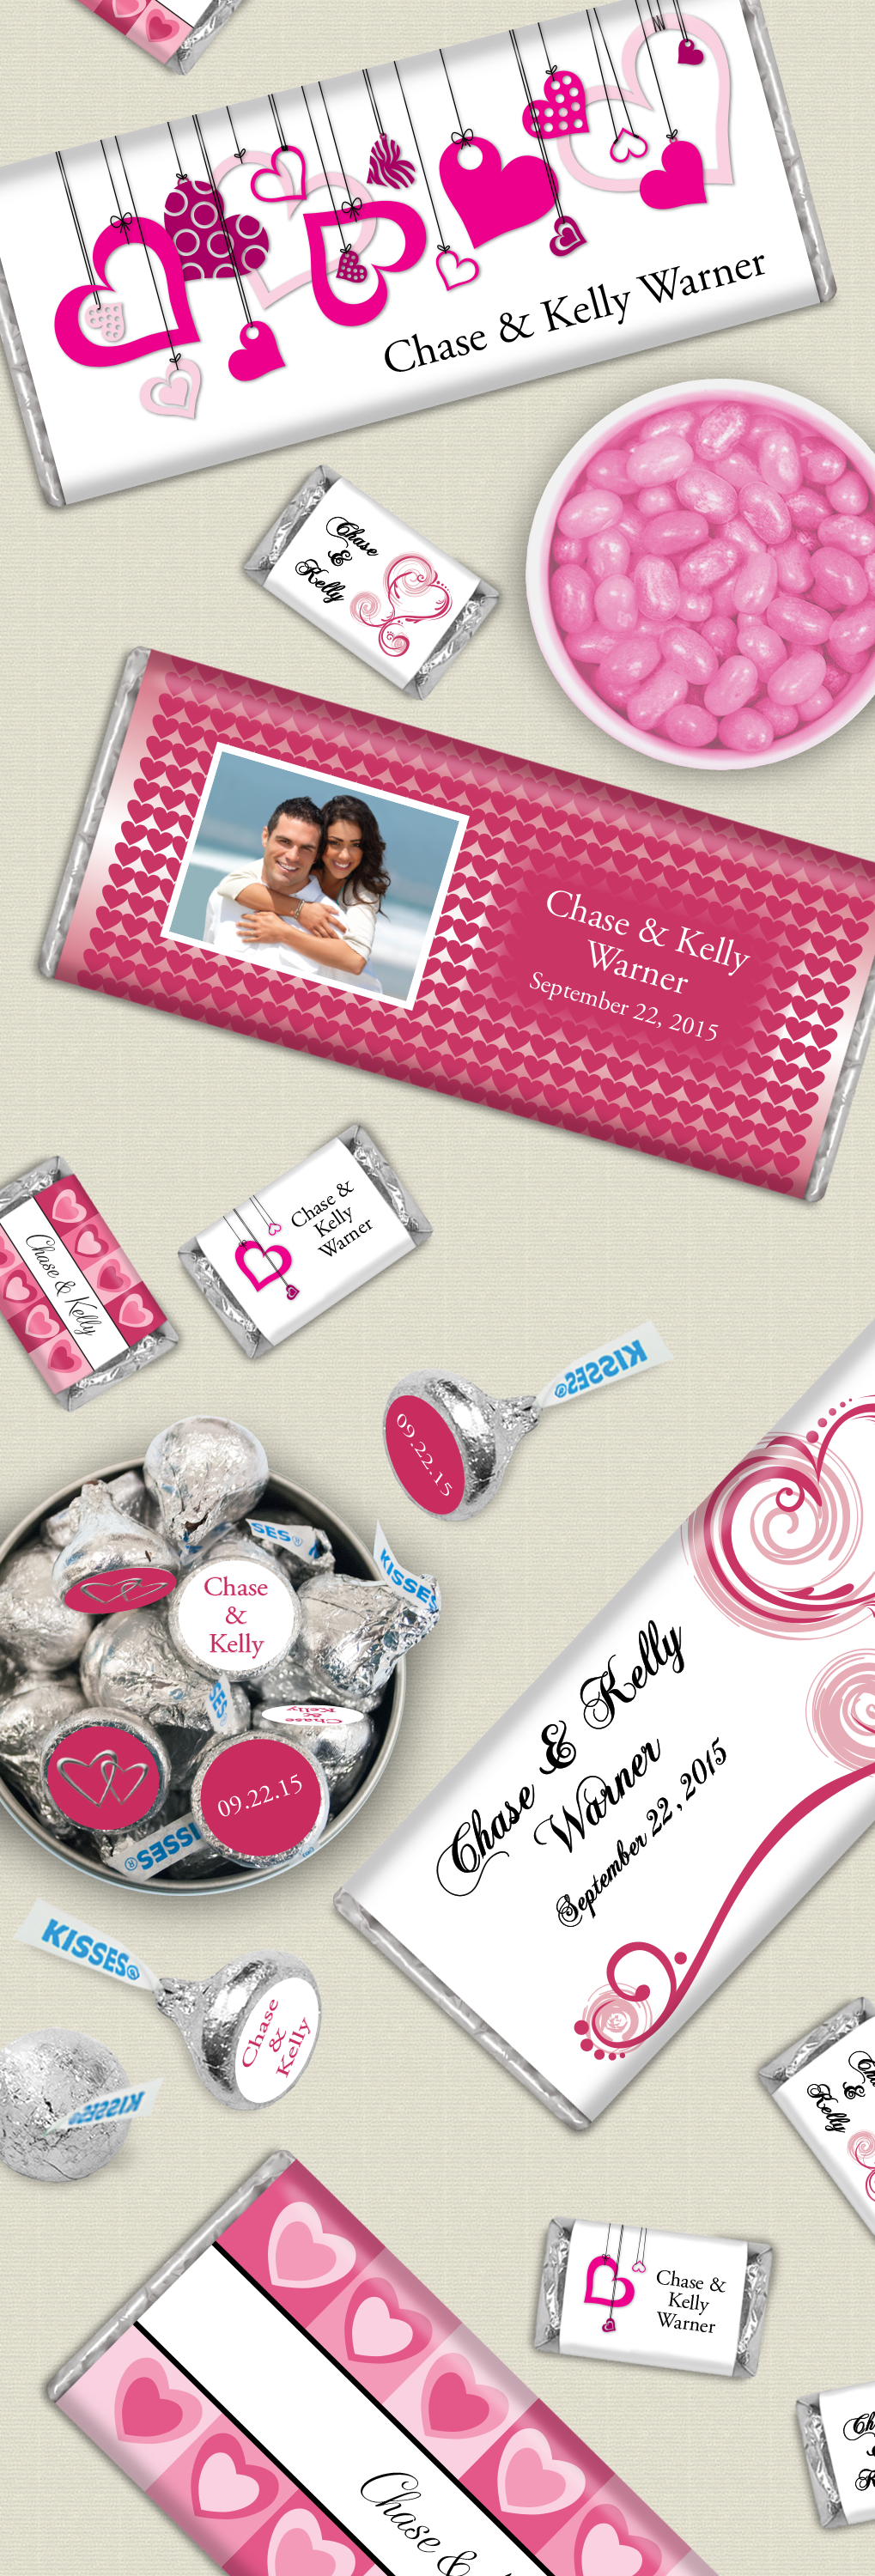 Pink Wedding Candy Buffet: Personalized chocolate bars, pink Jelly ...